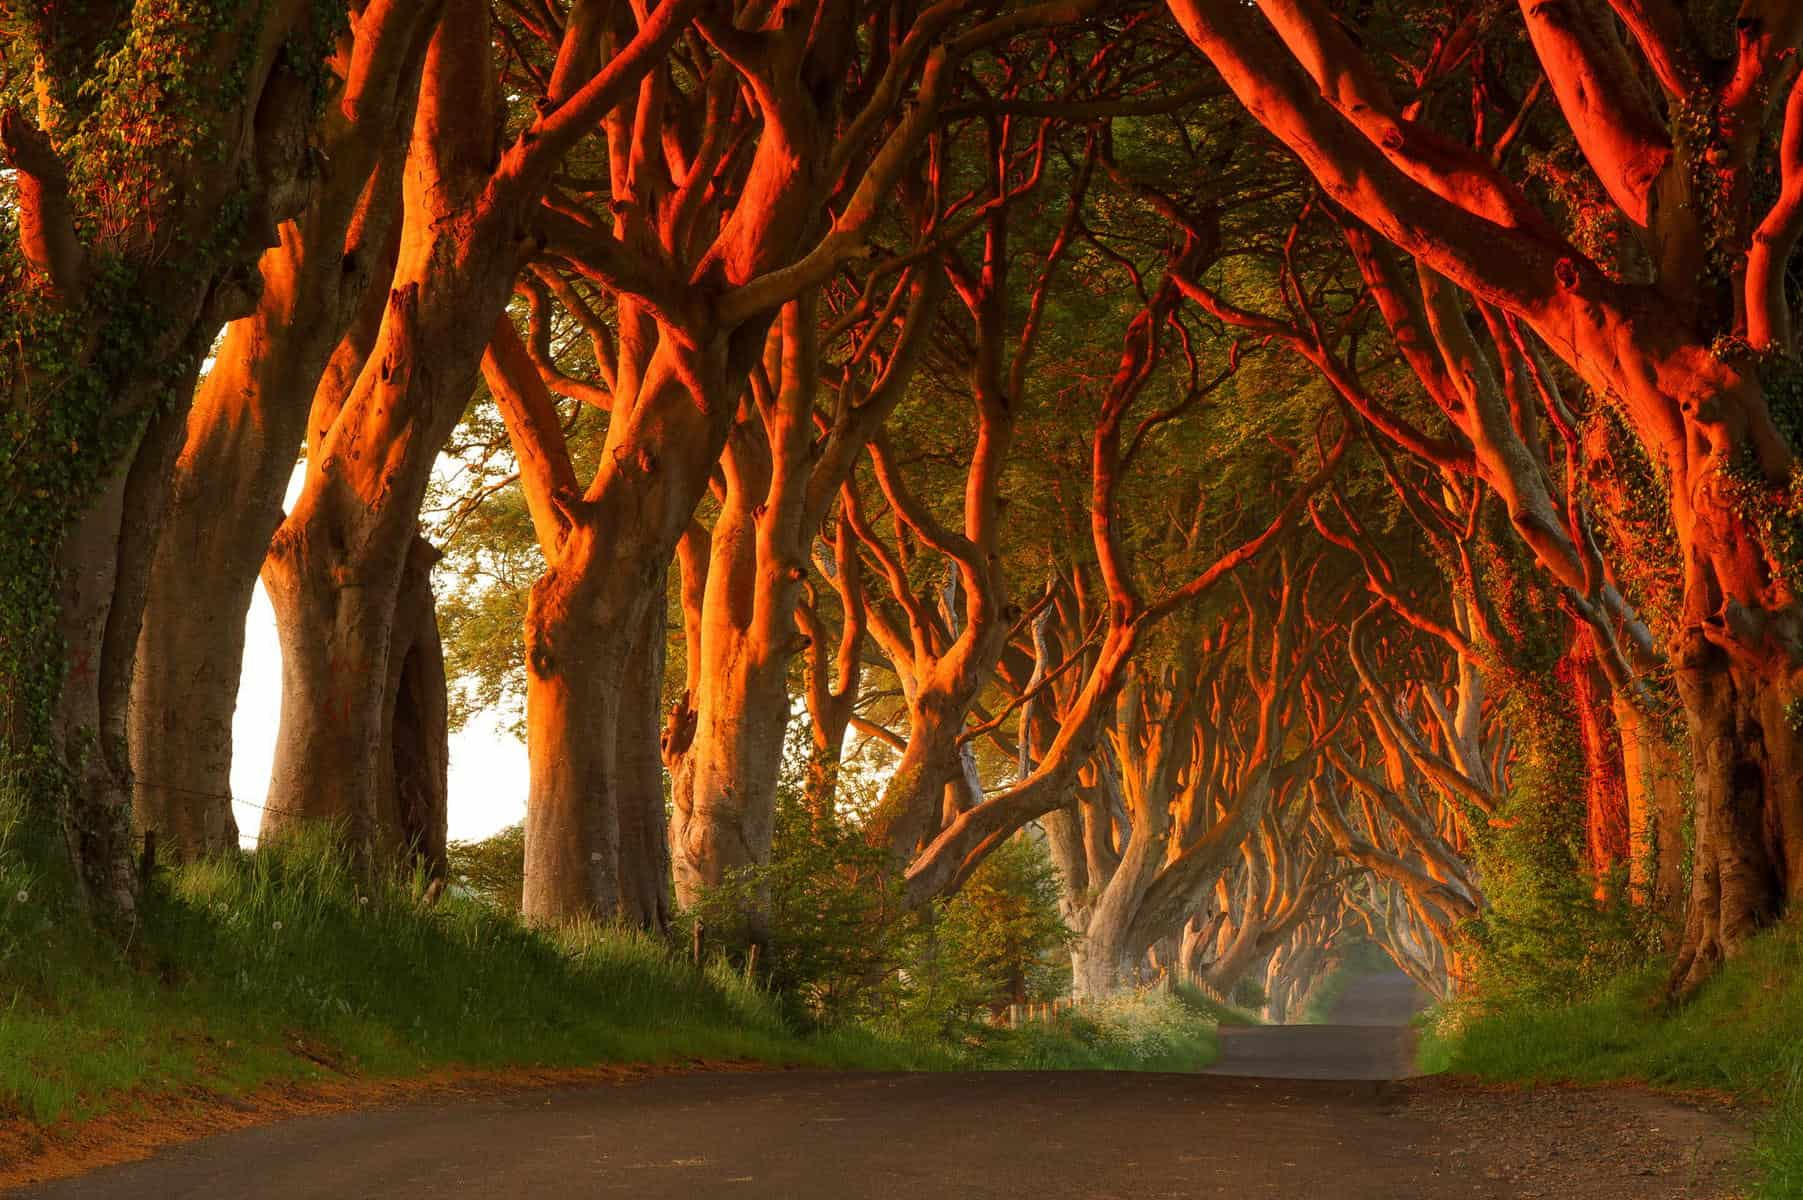 Dark Hedges address: Bregagh Rd, Ballymoney BT53 8TP, United Kingdom